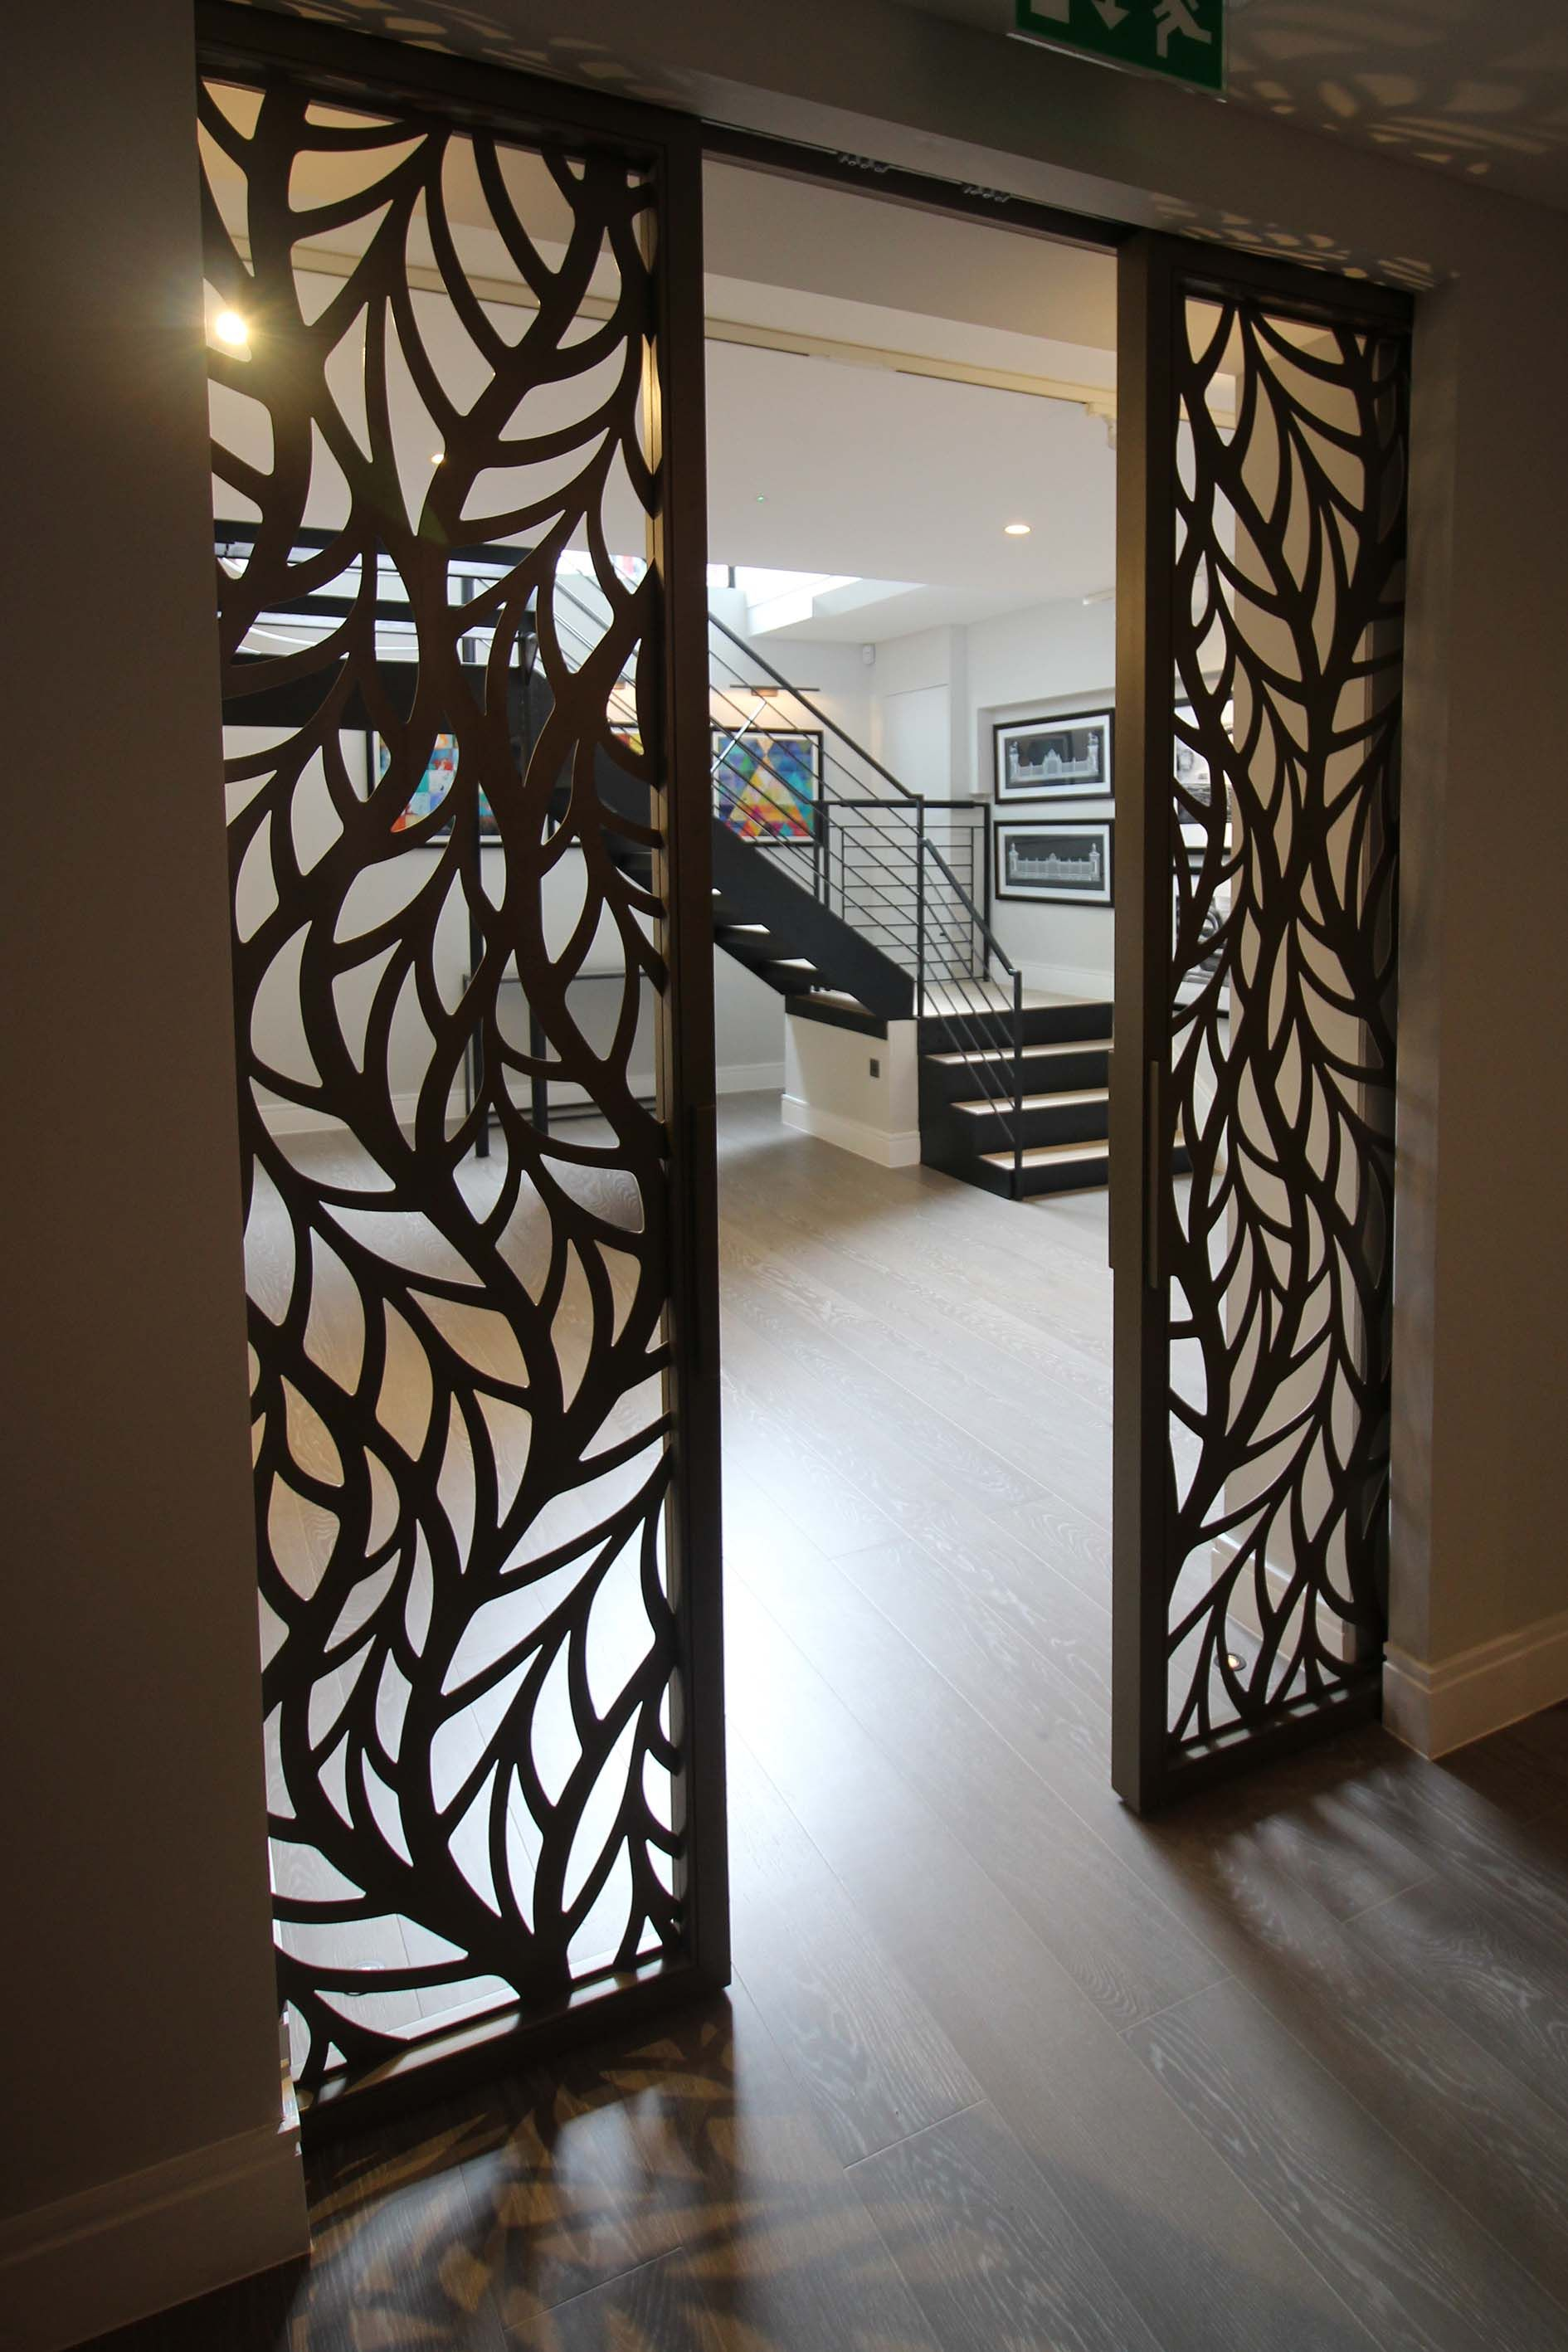 Silian art gallery london laser cut sliding doors frond for Sliding glass doors nyc